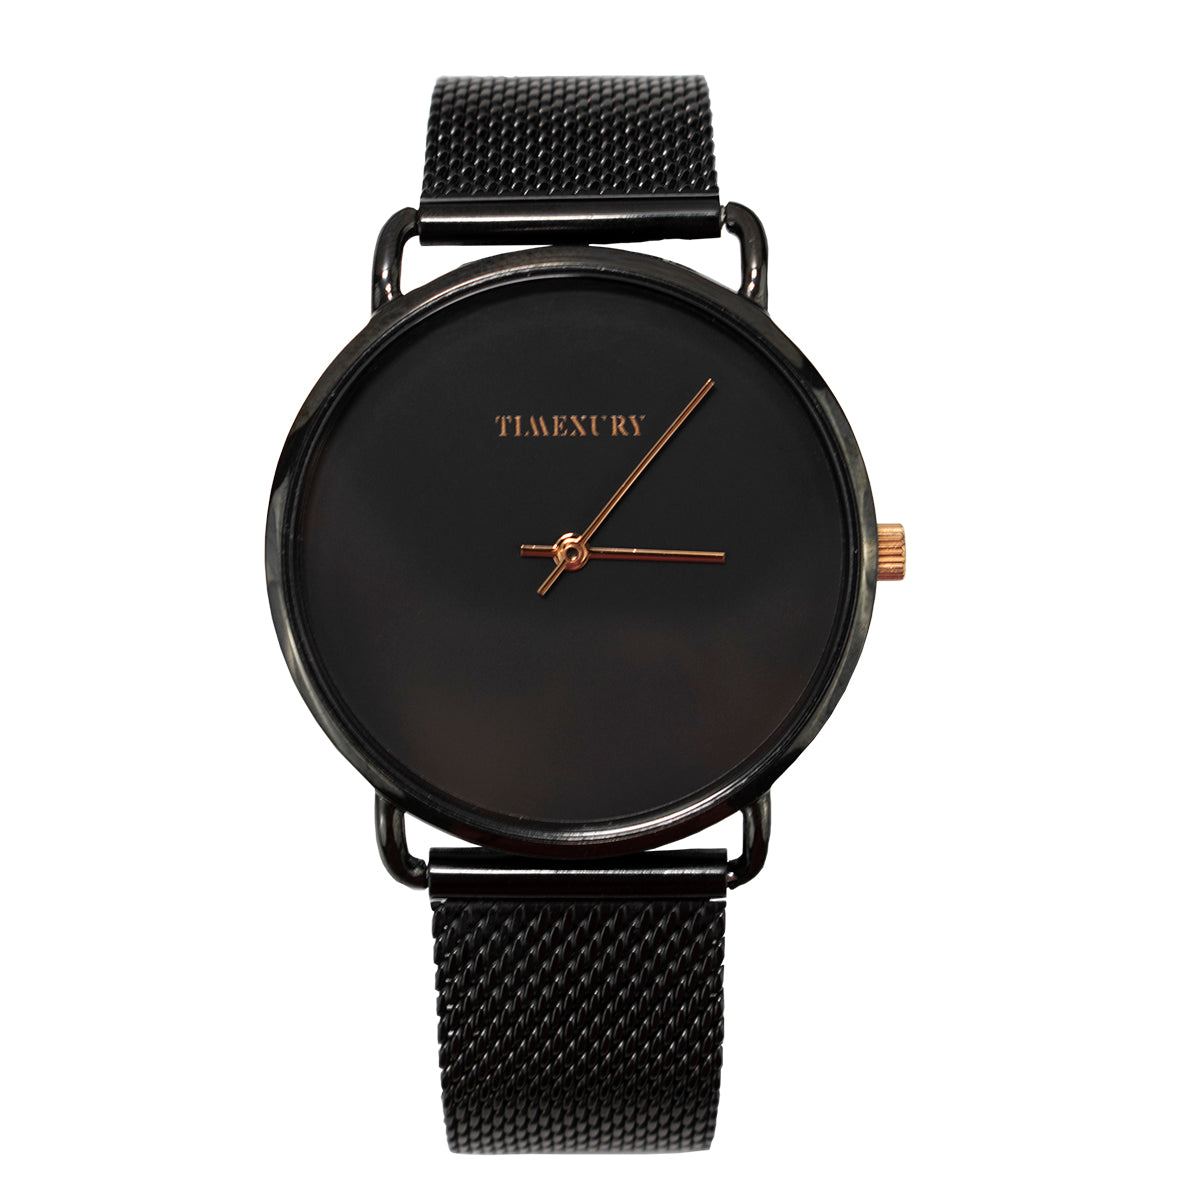 Autumn Black - TimexuryWatches